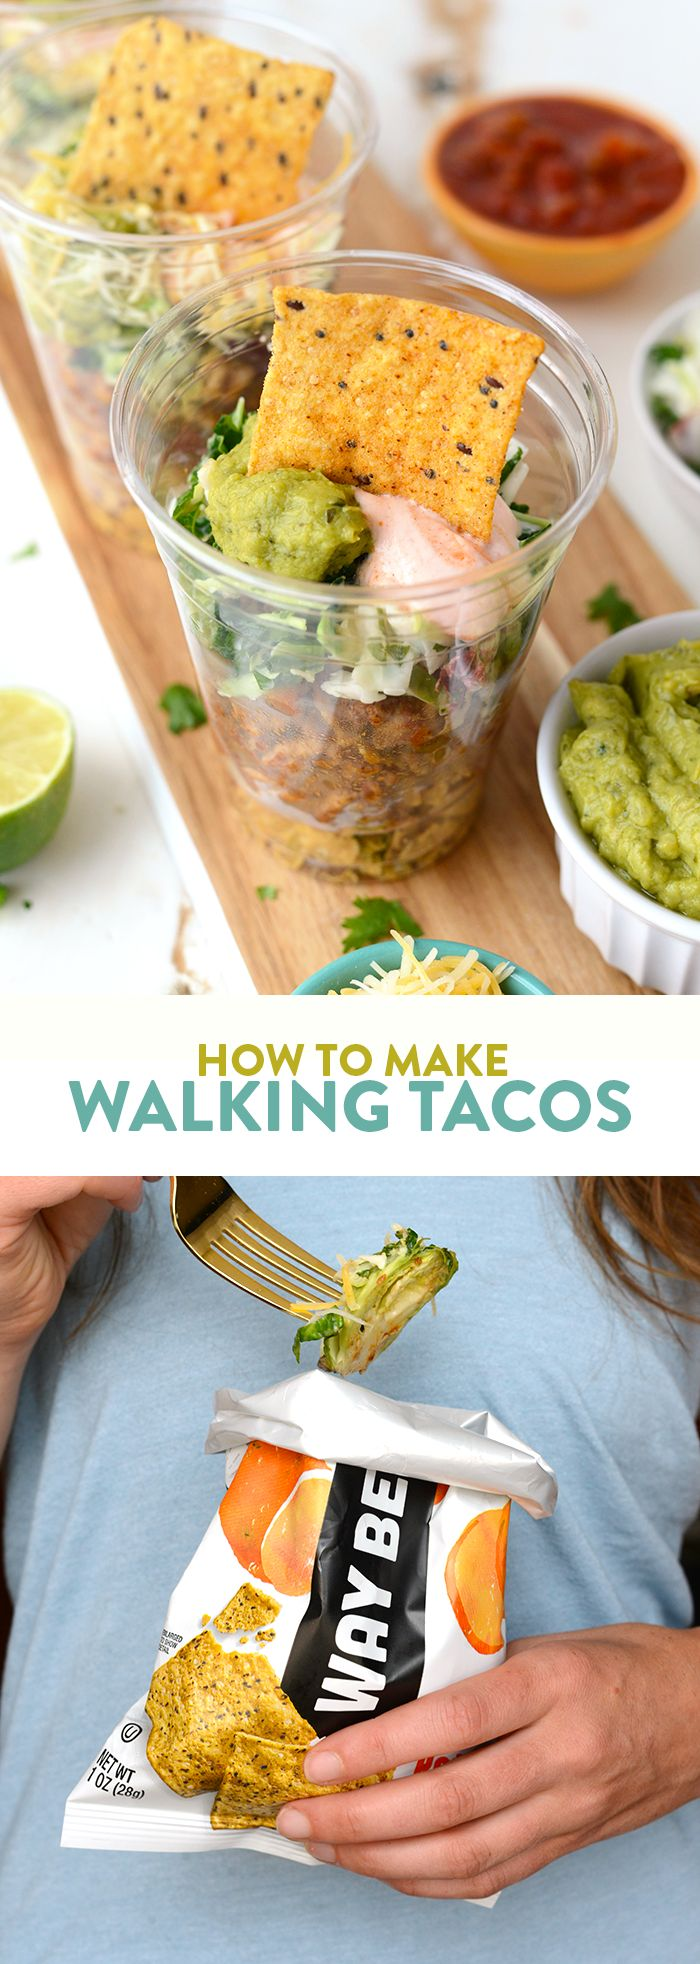 Up your walking taco game with my favorite Way Better Snacks, lean ground turkey taco meat, and a delicious kale slaw topped with all of your favorite fixings!